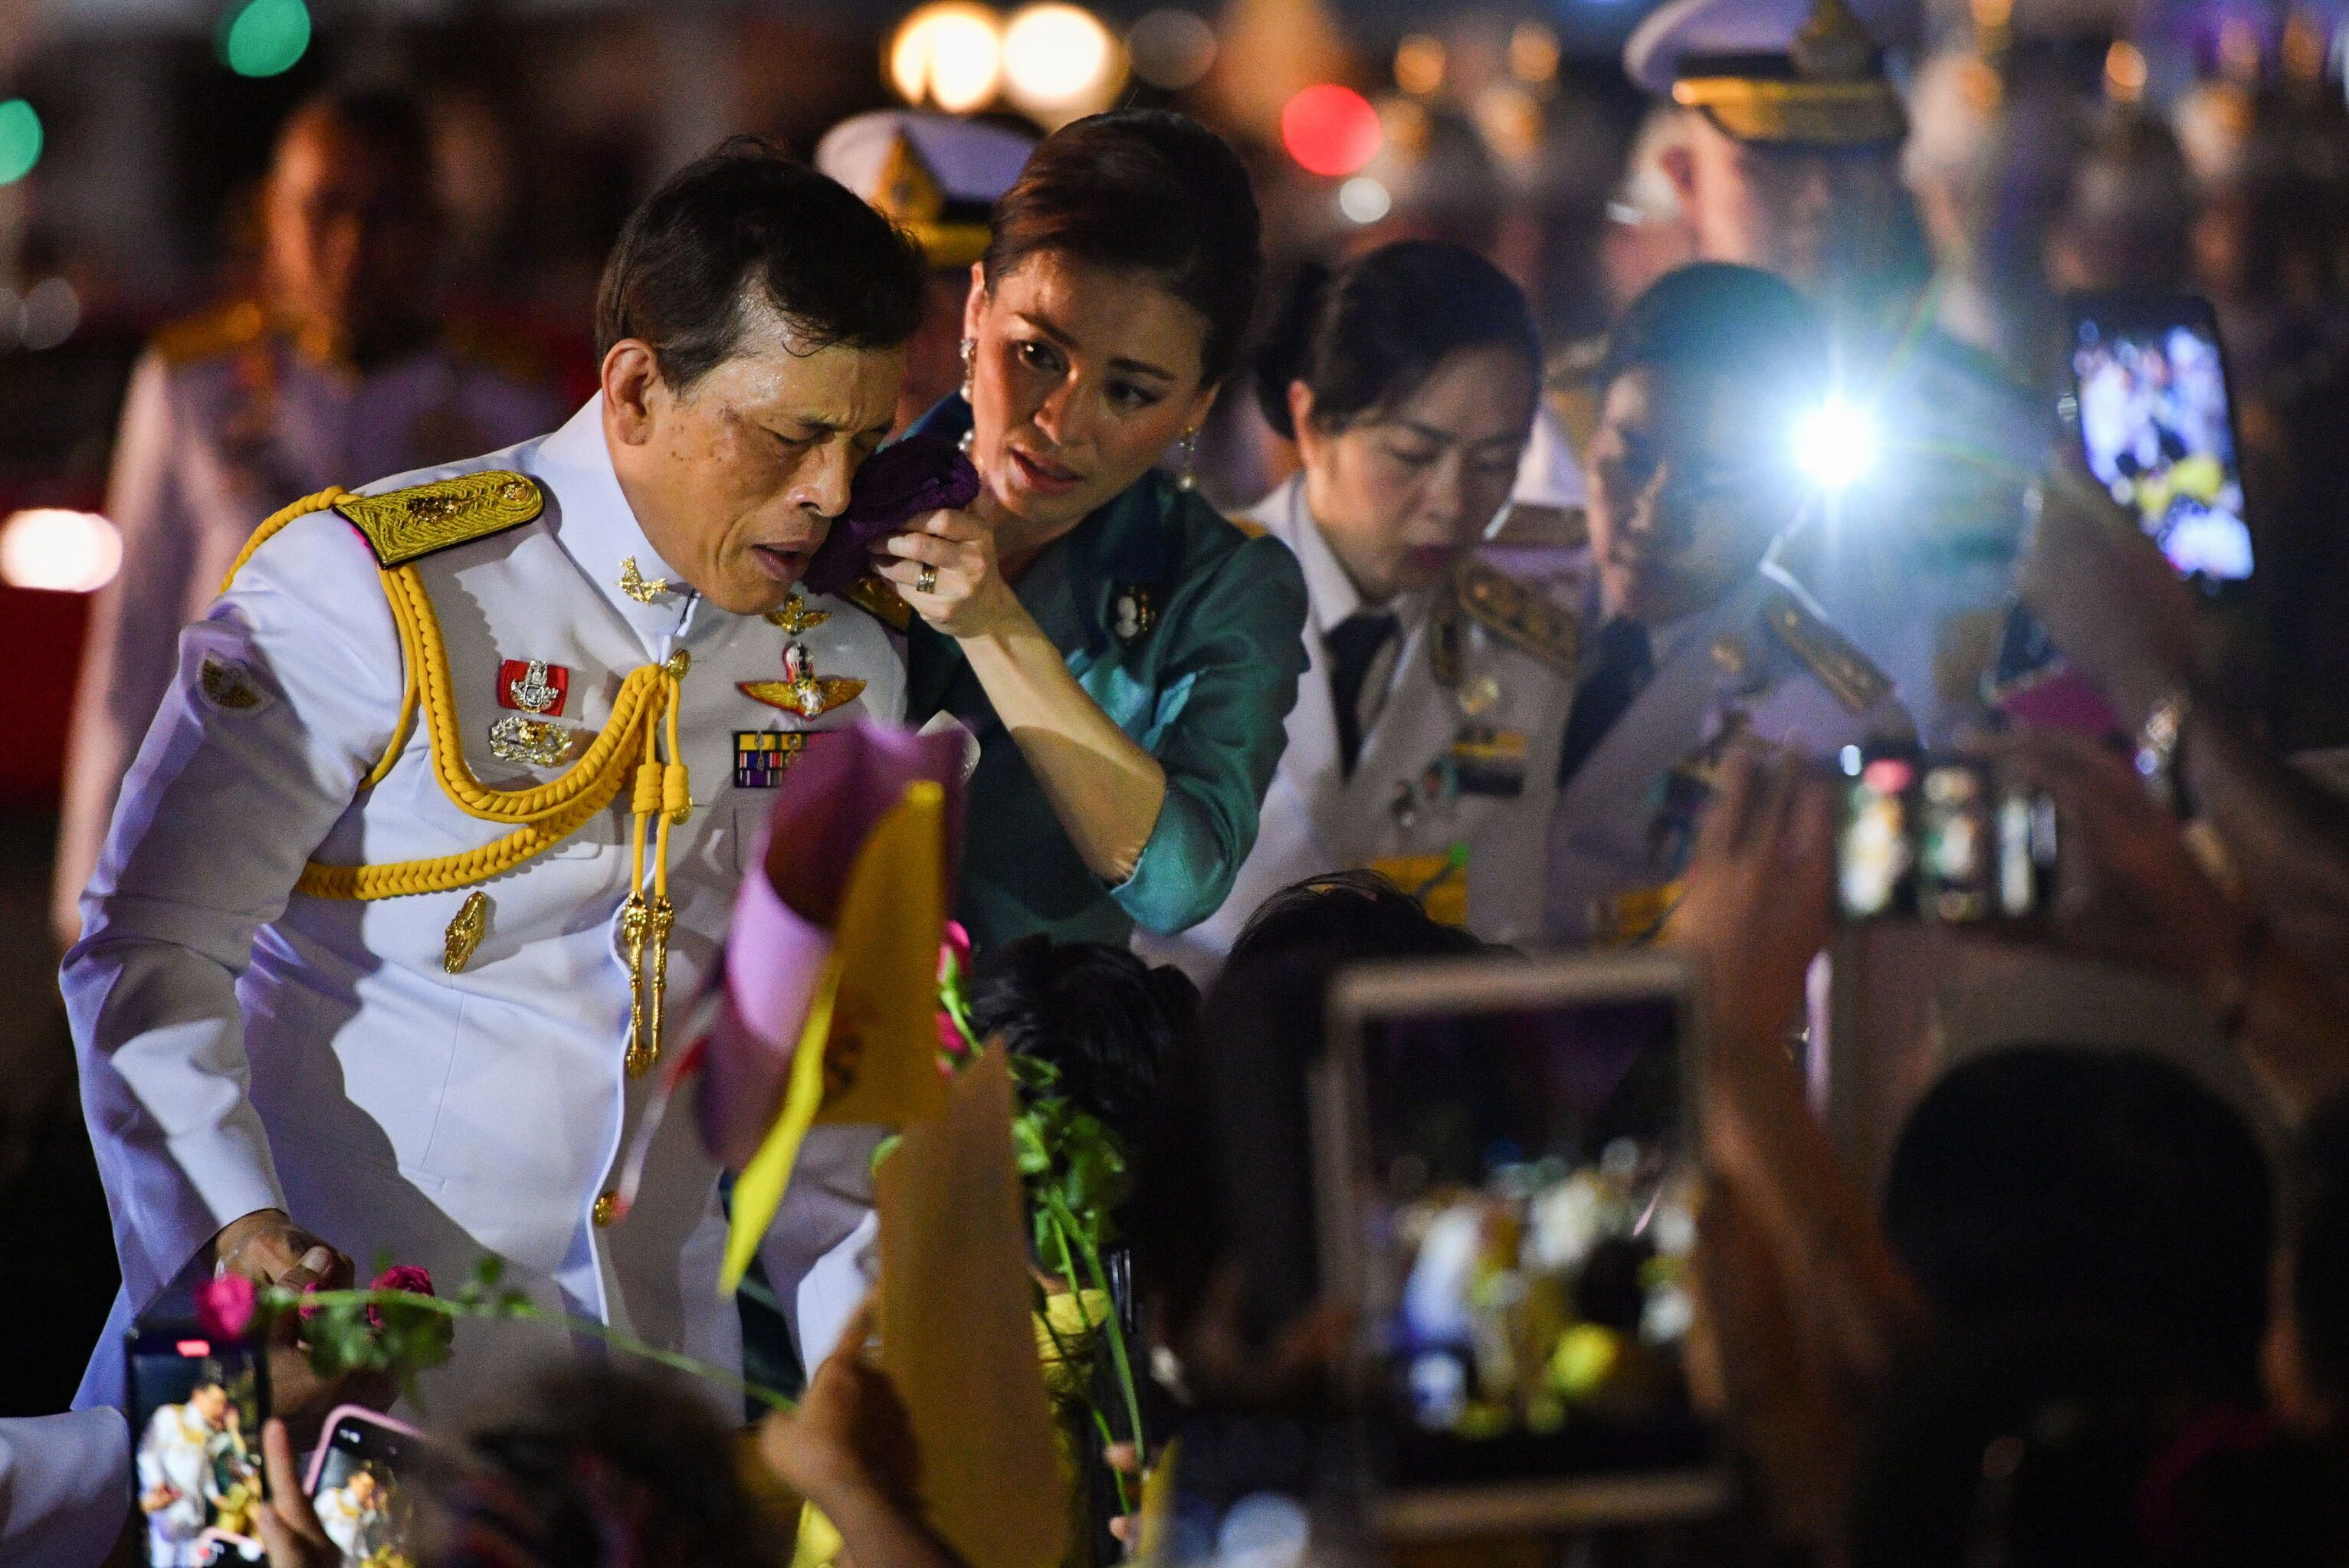 After 100 Years, There Is Another Thai Royal Consort